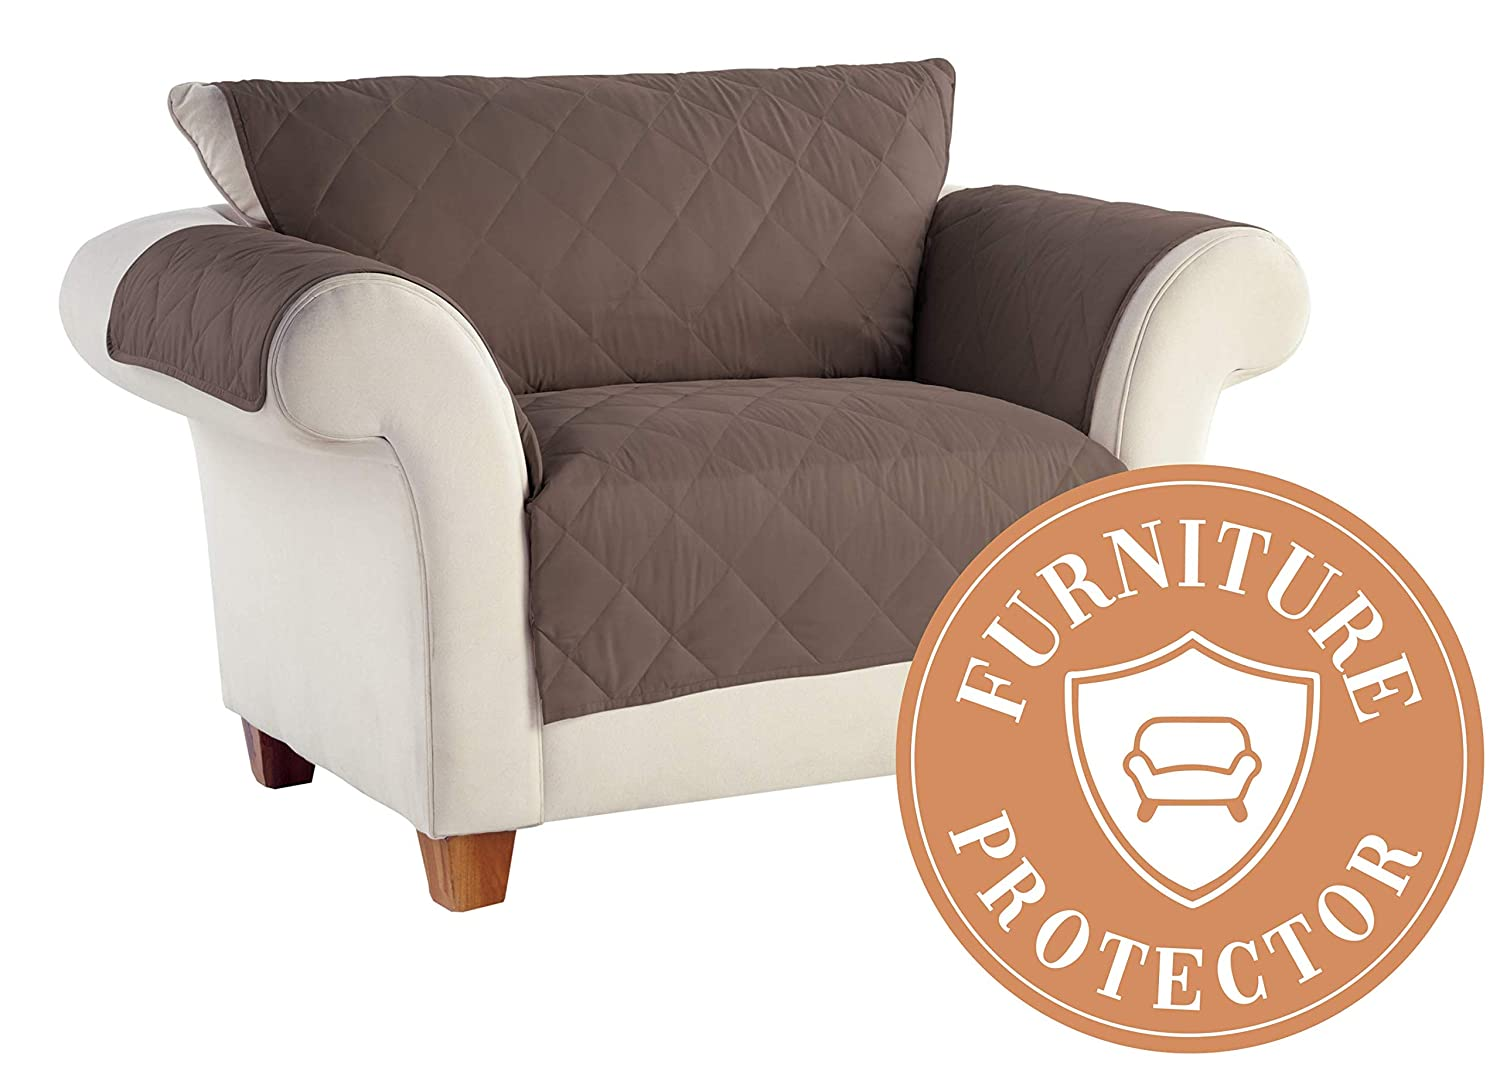 Serta | Diamond Quilted Furniture Protector for Sofa with Patended No-Slip Design & Easy-Fit Bands, (Handcast Pewter) Tailor Fit 818700